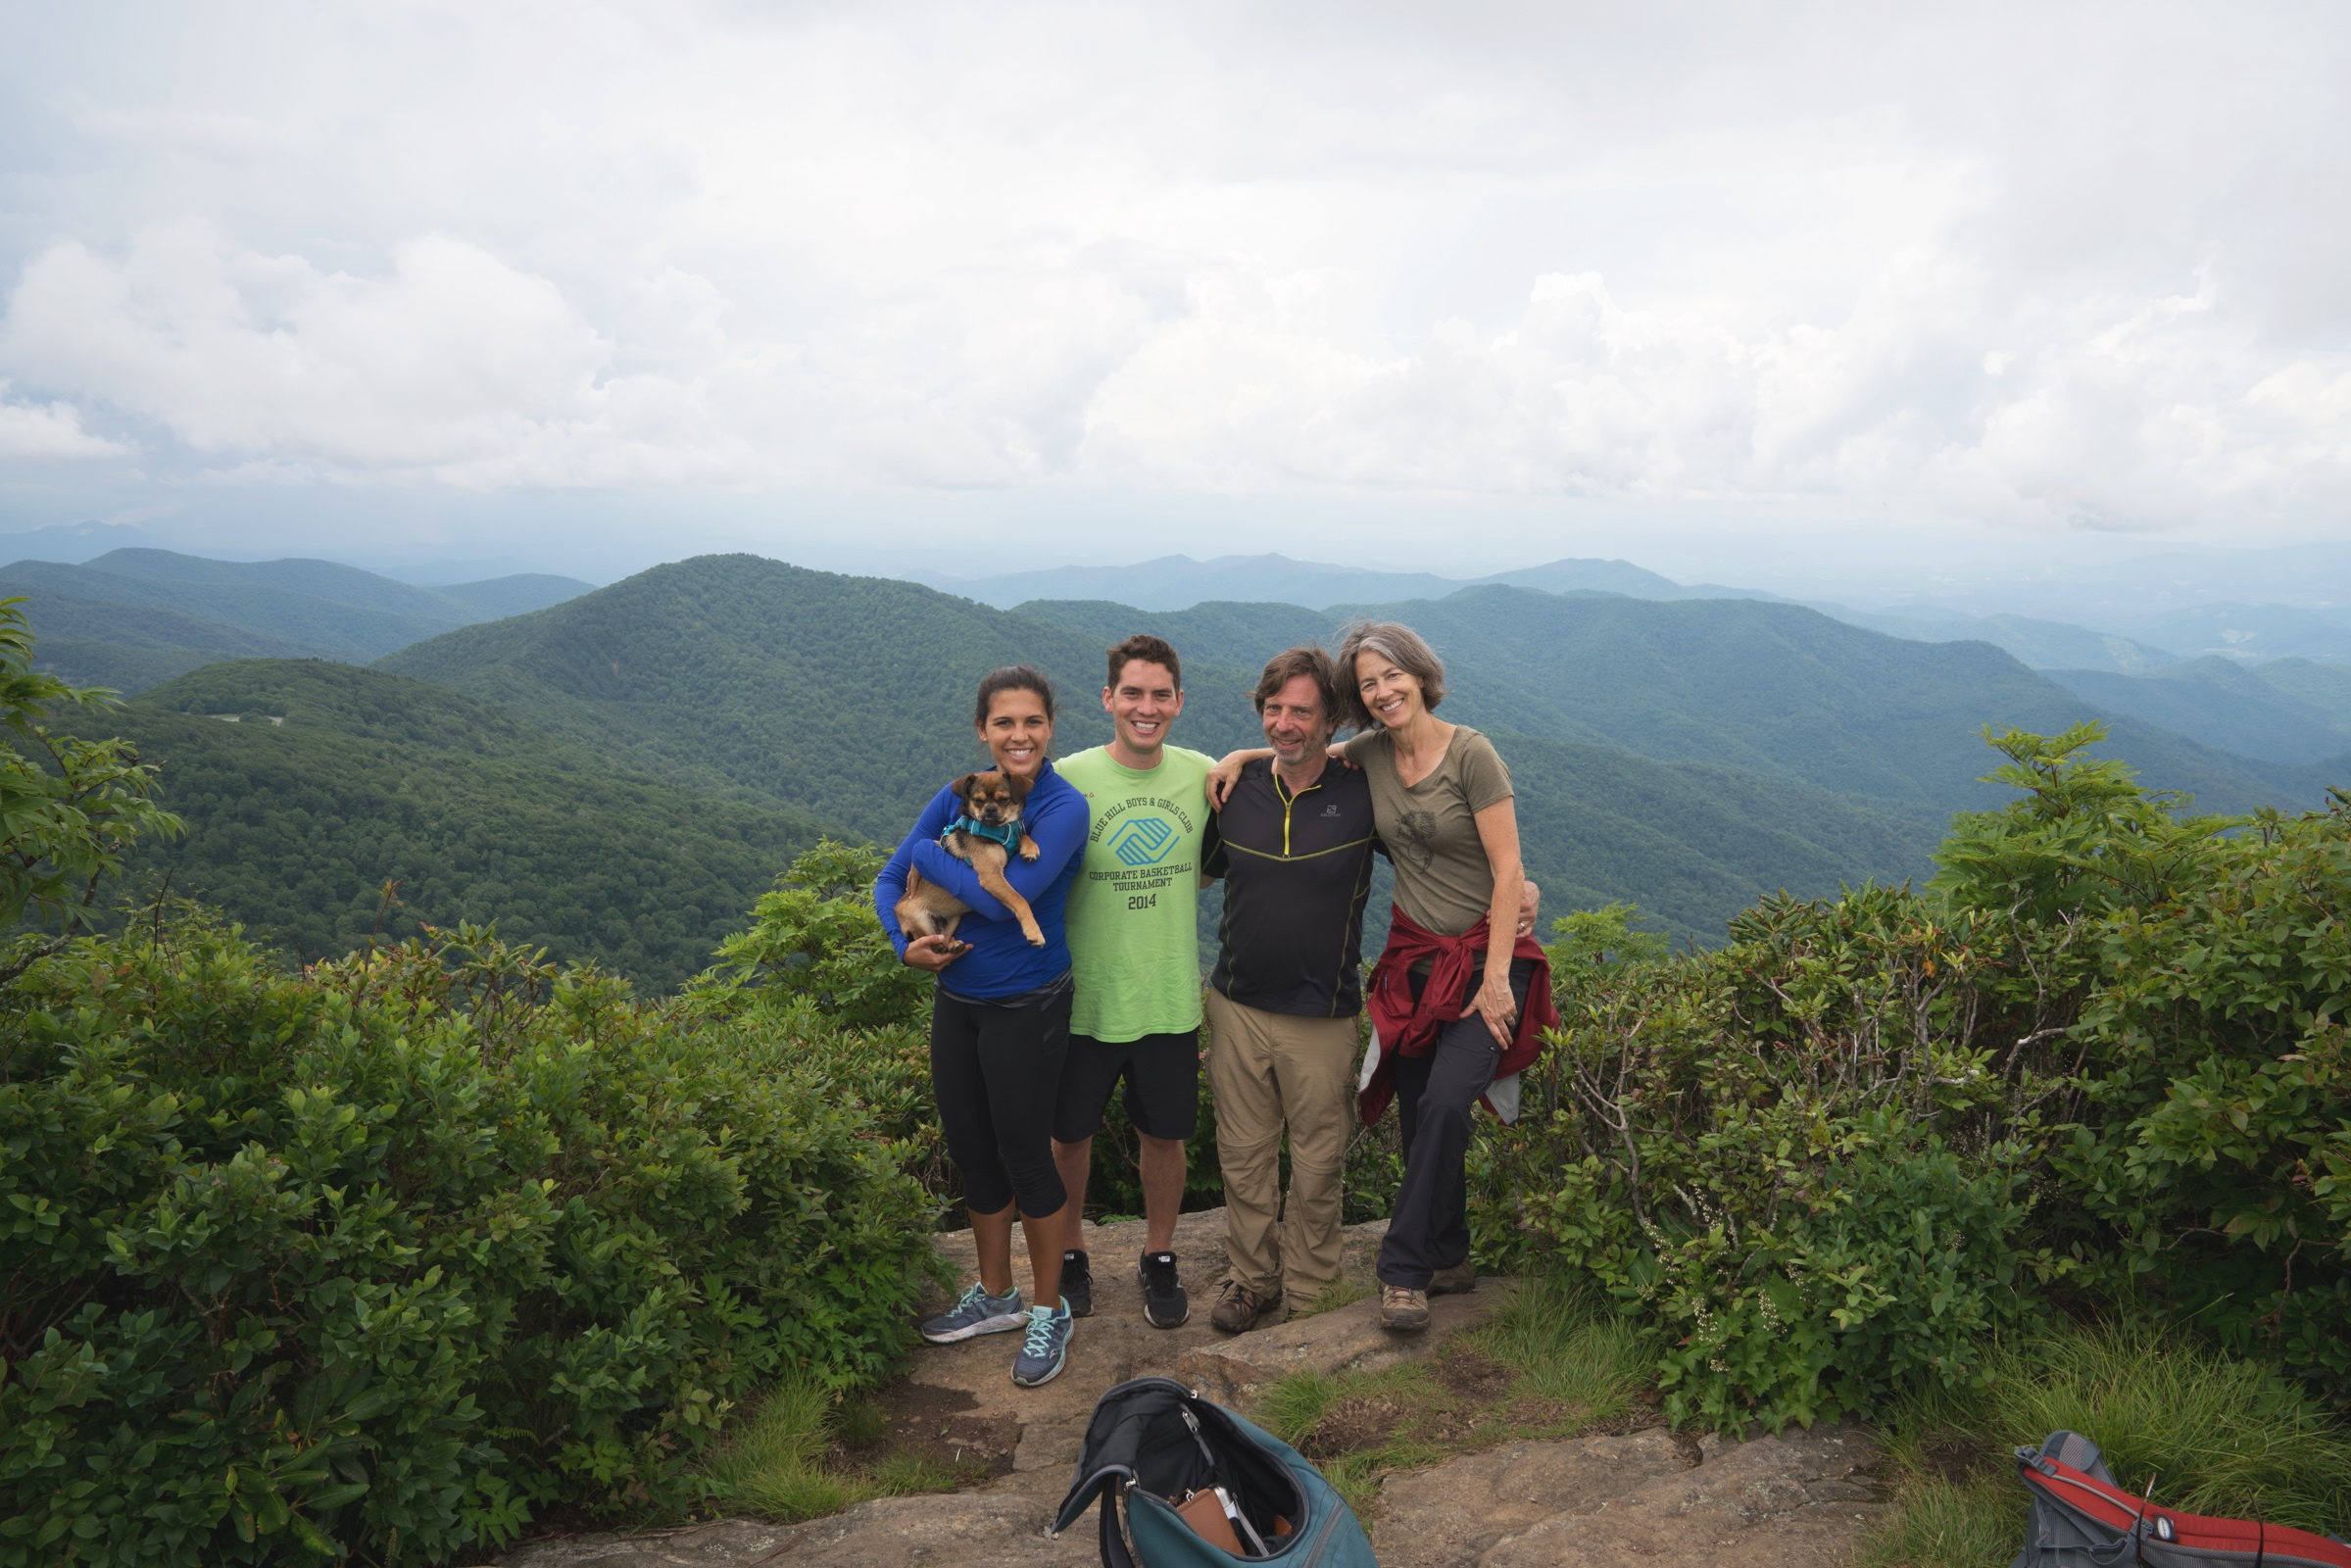 We stopped off for another favorite, Craggy Pinnacle, for the short 1/2 mile hike to the top. Pictured are Caitlyn and James (nephew and fiancee), Steve, and Lynne